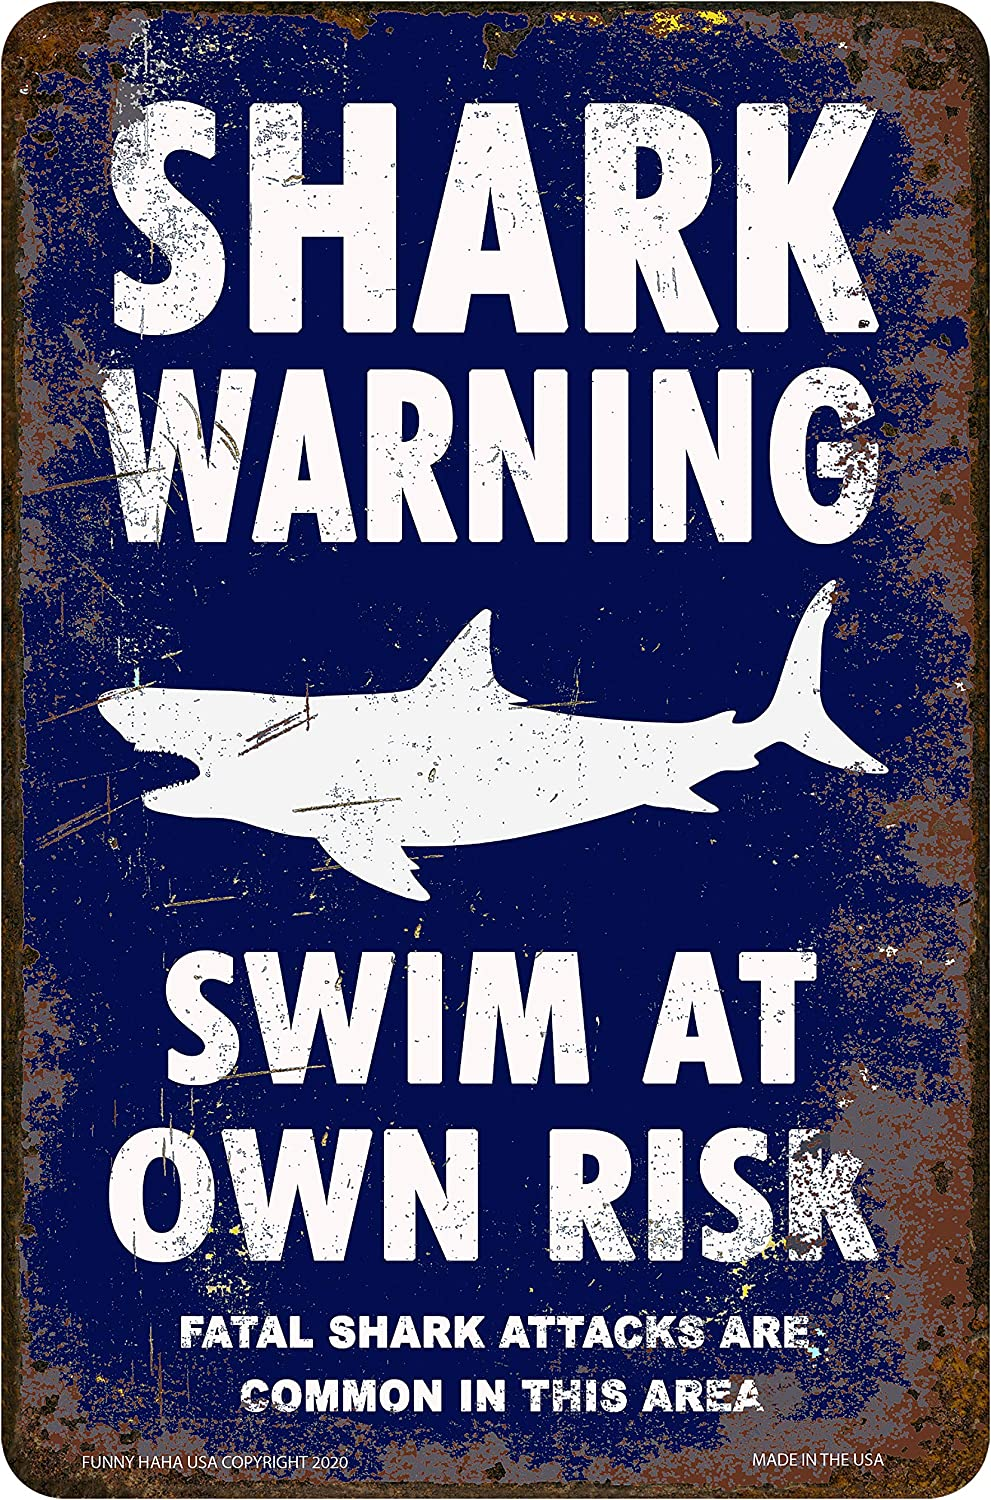 Funny HAHA USA Shark Warning Sign Metal Sign Navy Blue